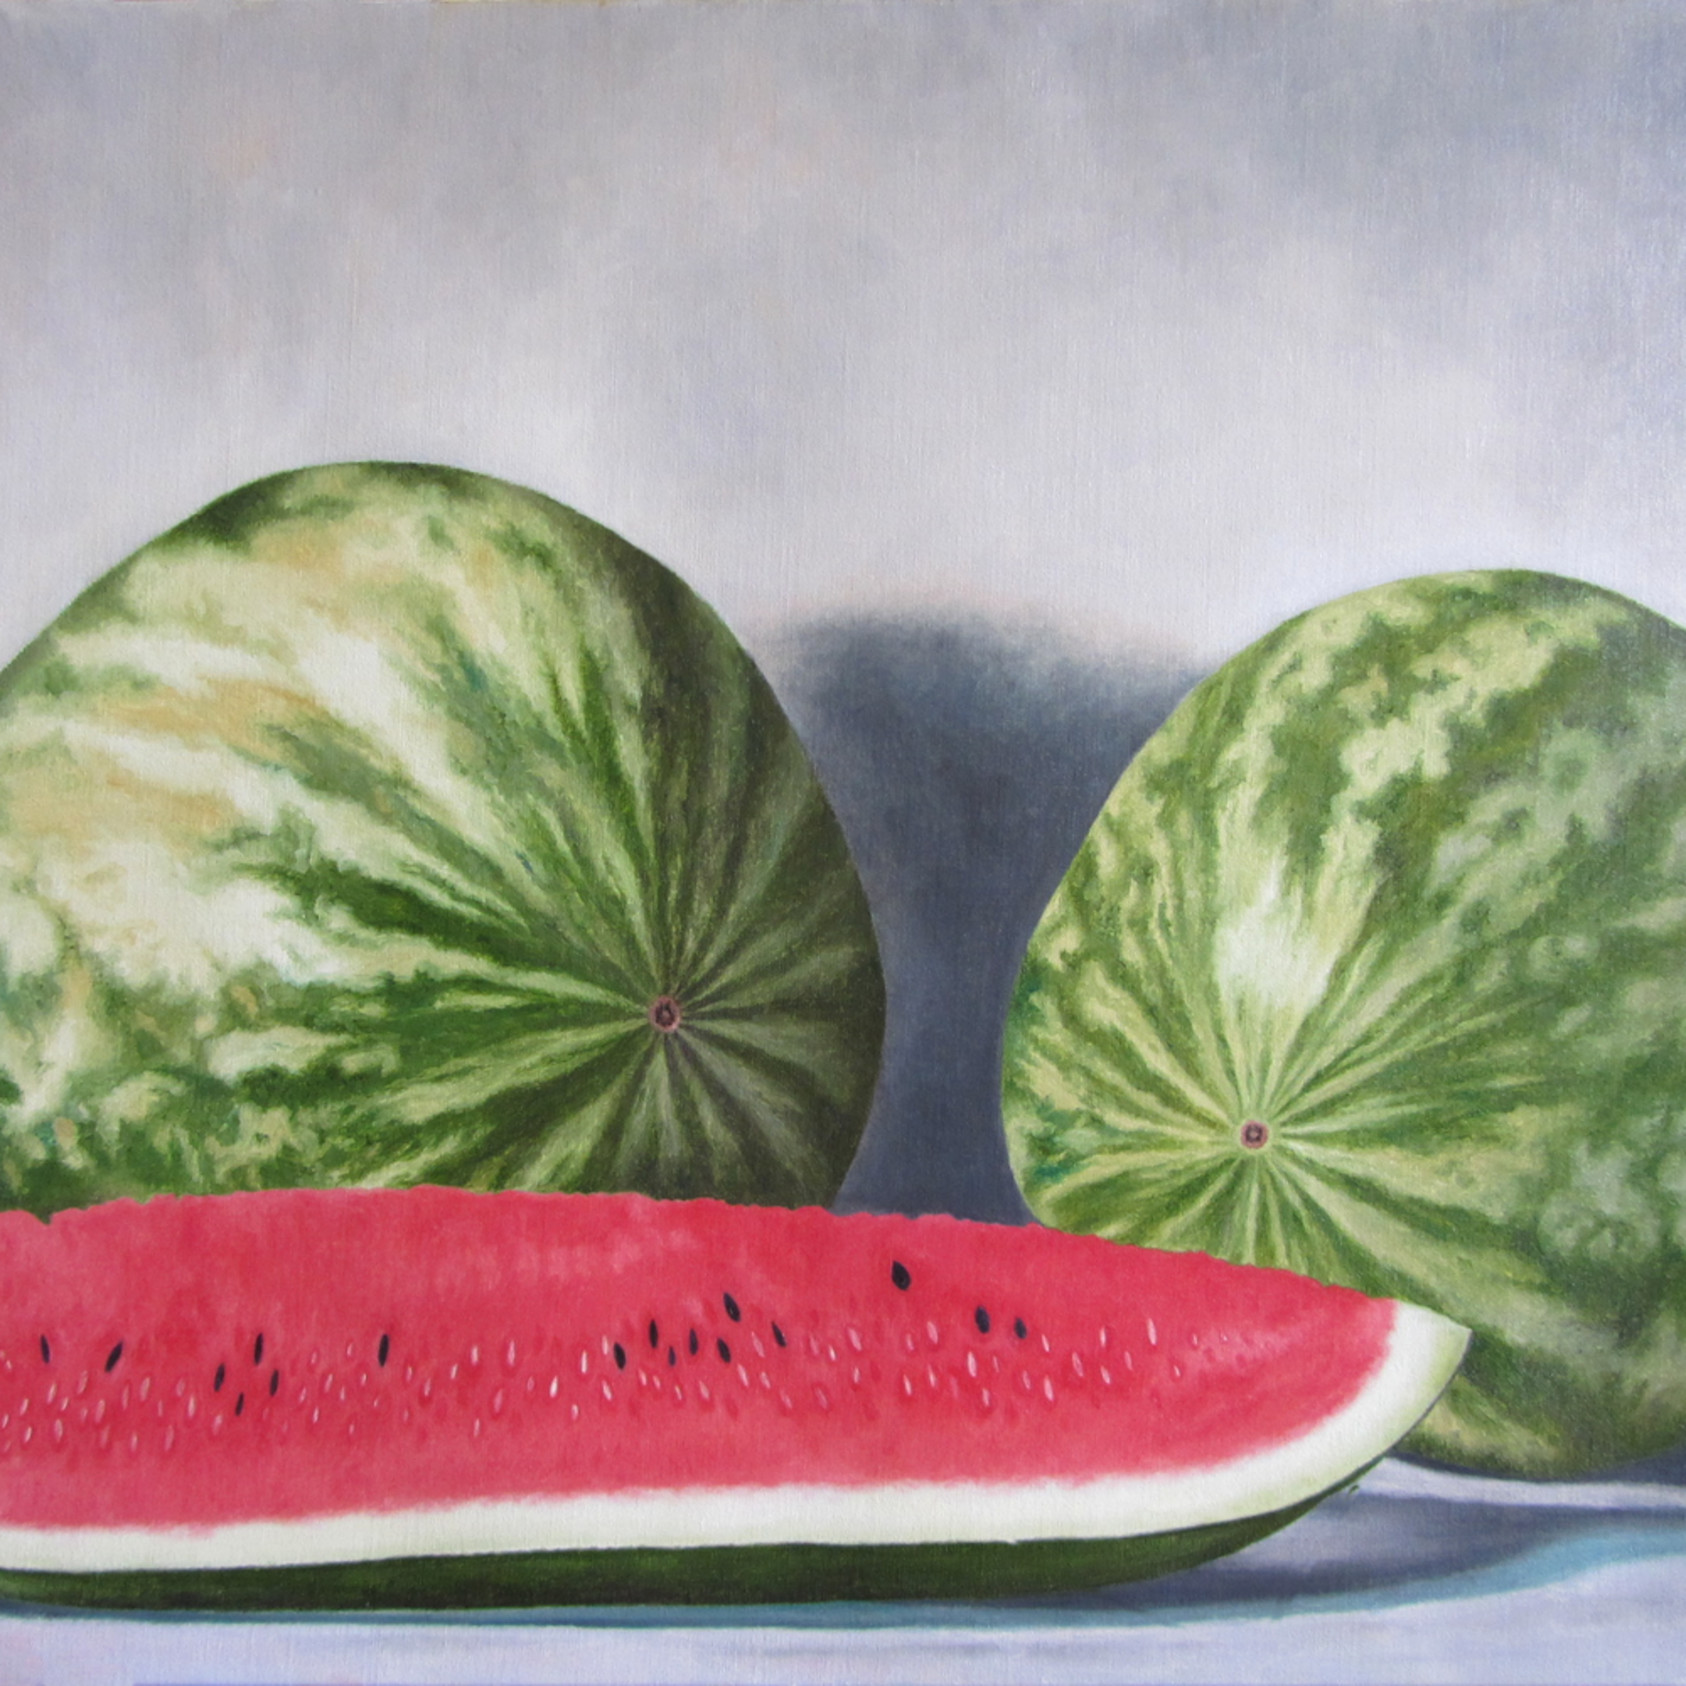 Watermelonoriginal3 jgxqkv